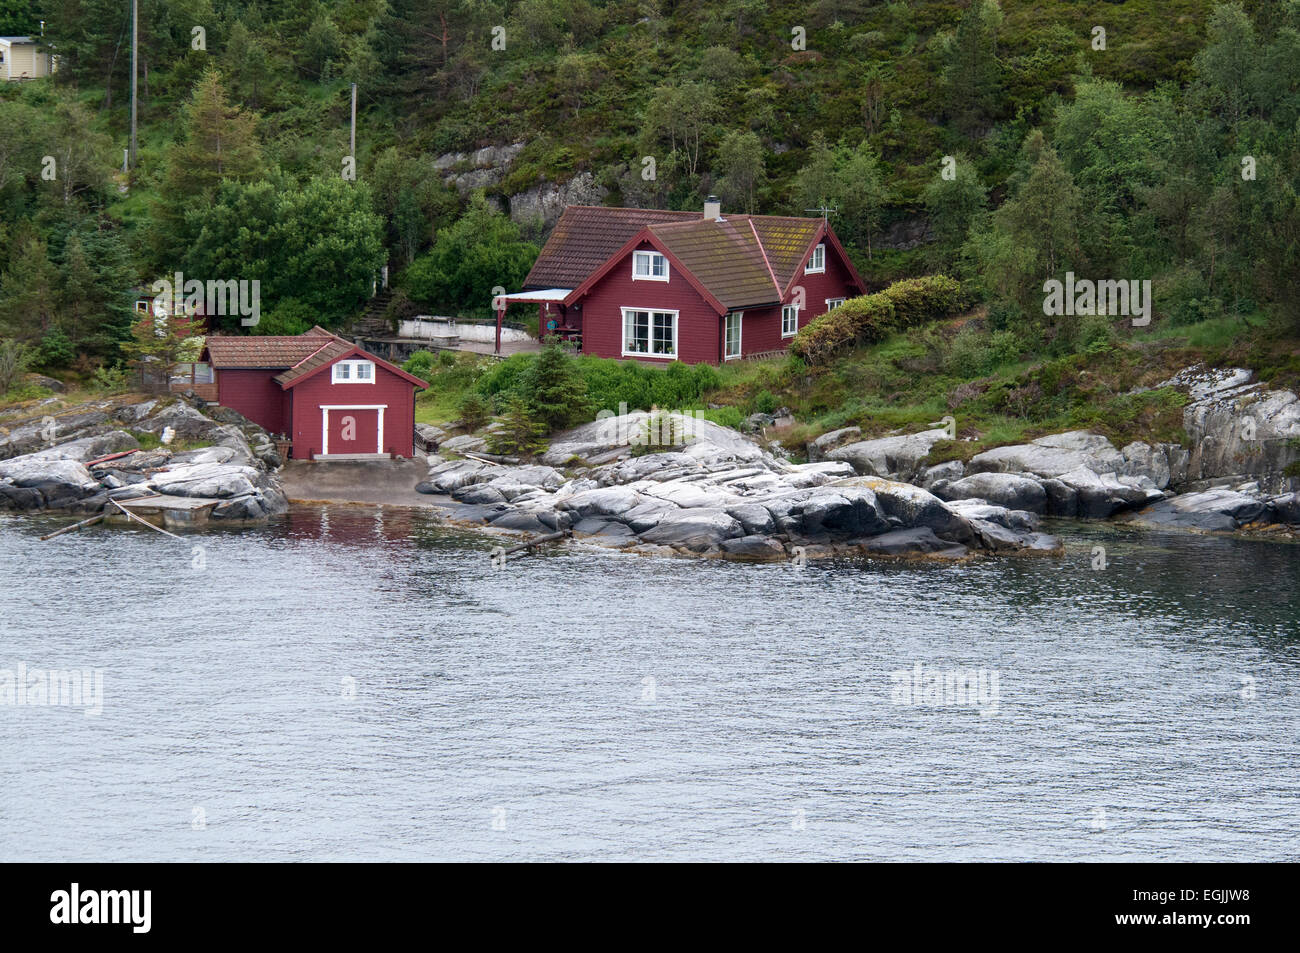 In the fjords just out of the Norwegian city of Bergen some holiday houses are situated just at the shoreline.  - Stock Image